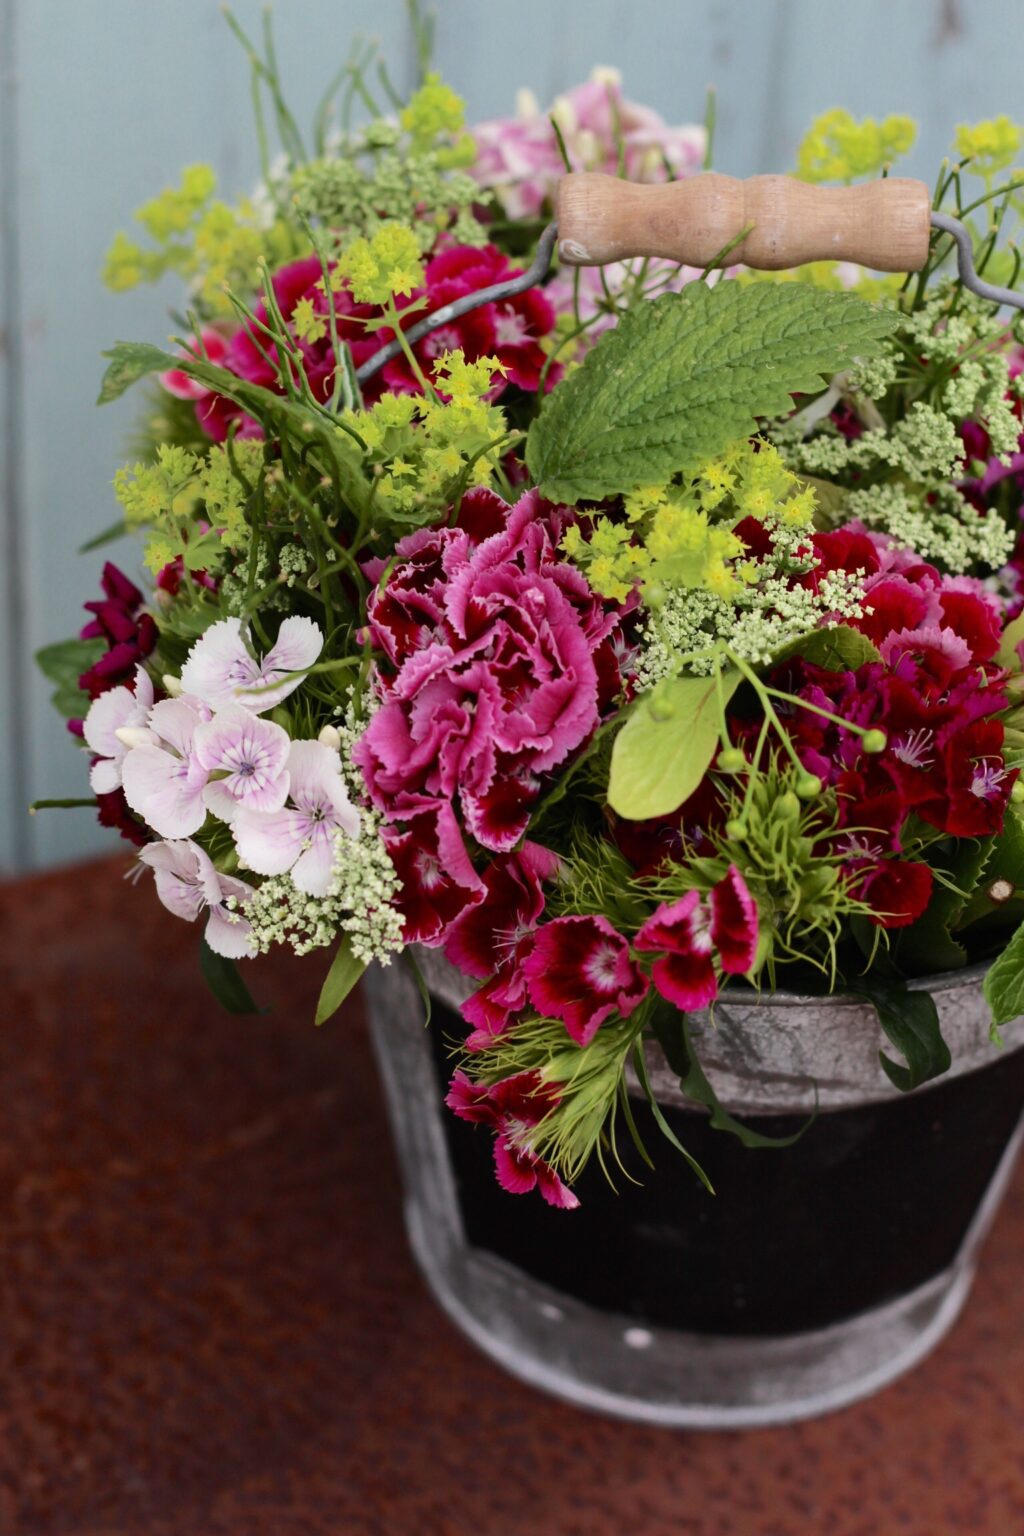 These posies of scented sweet william in a range of rich pinks, are brightened with the vivid greens of lady's mantle and delicously perfumed lemon balm leaf. Photo: Tuckshop Flowers